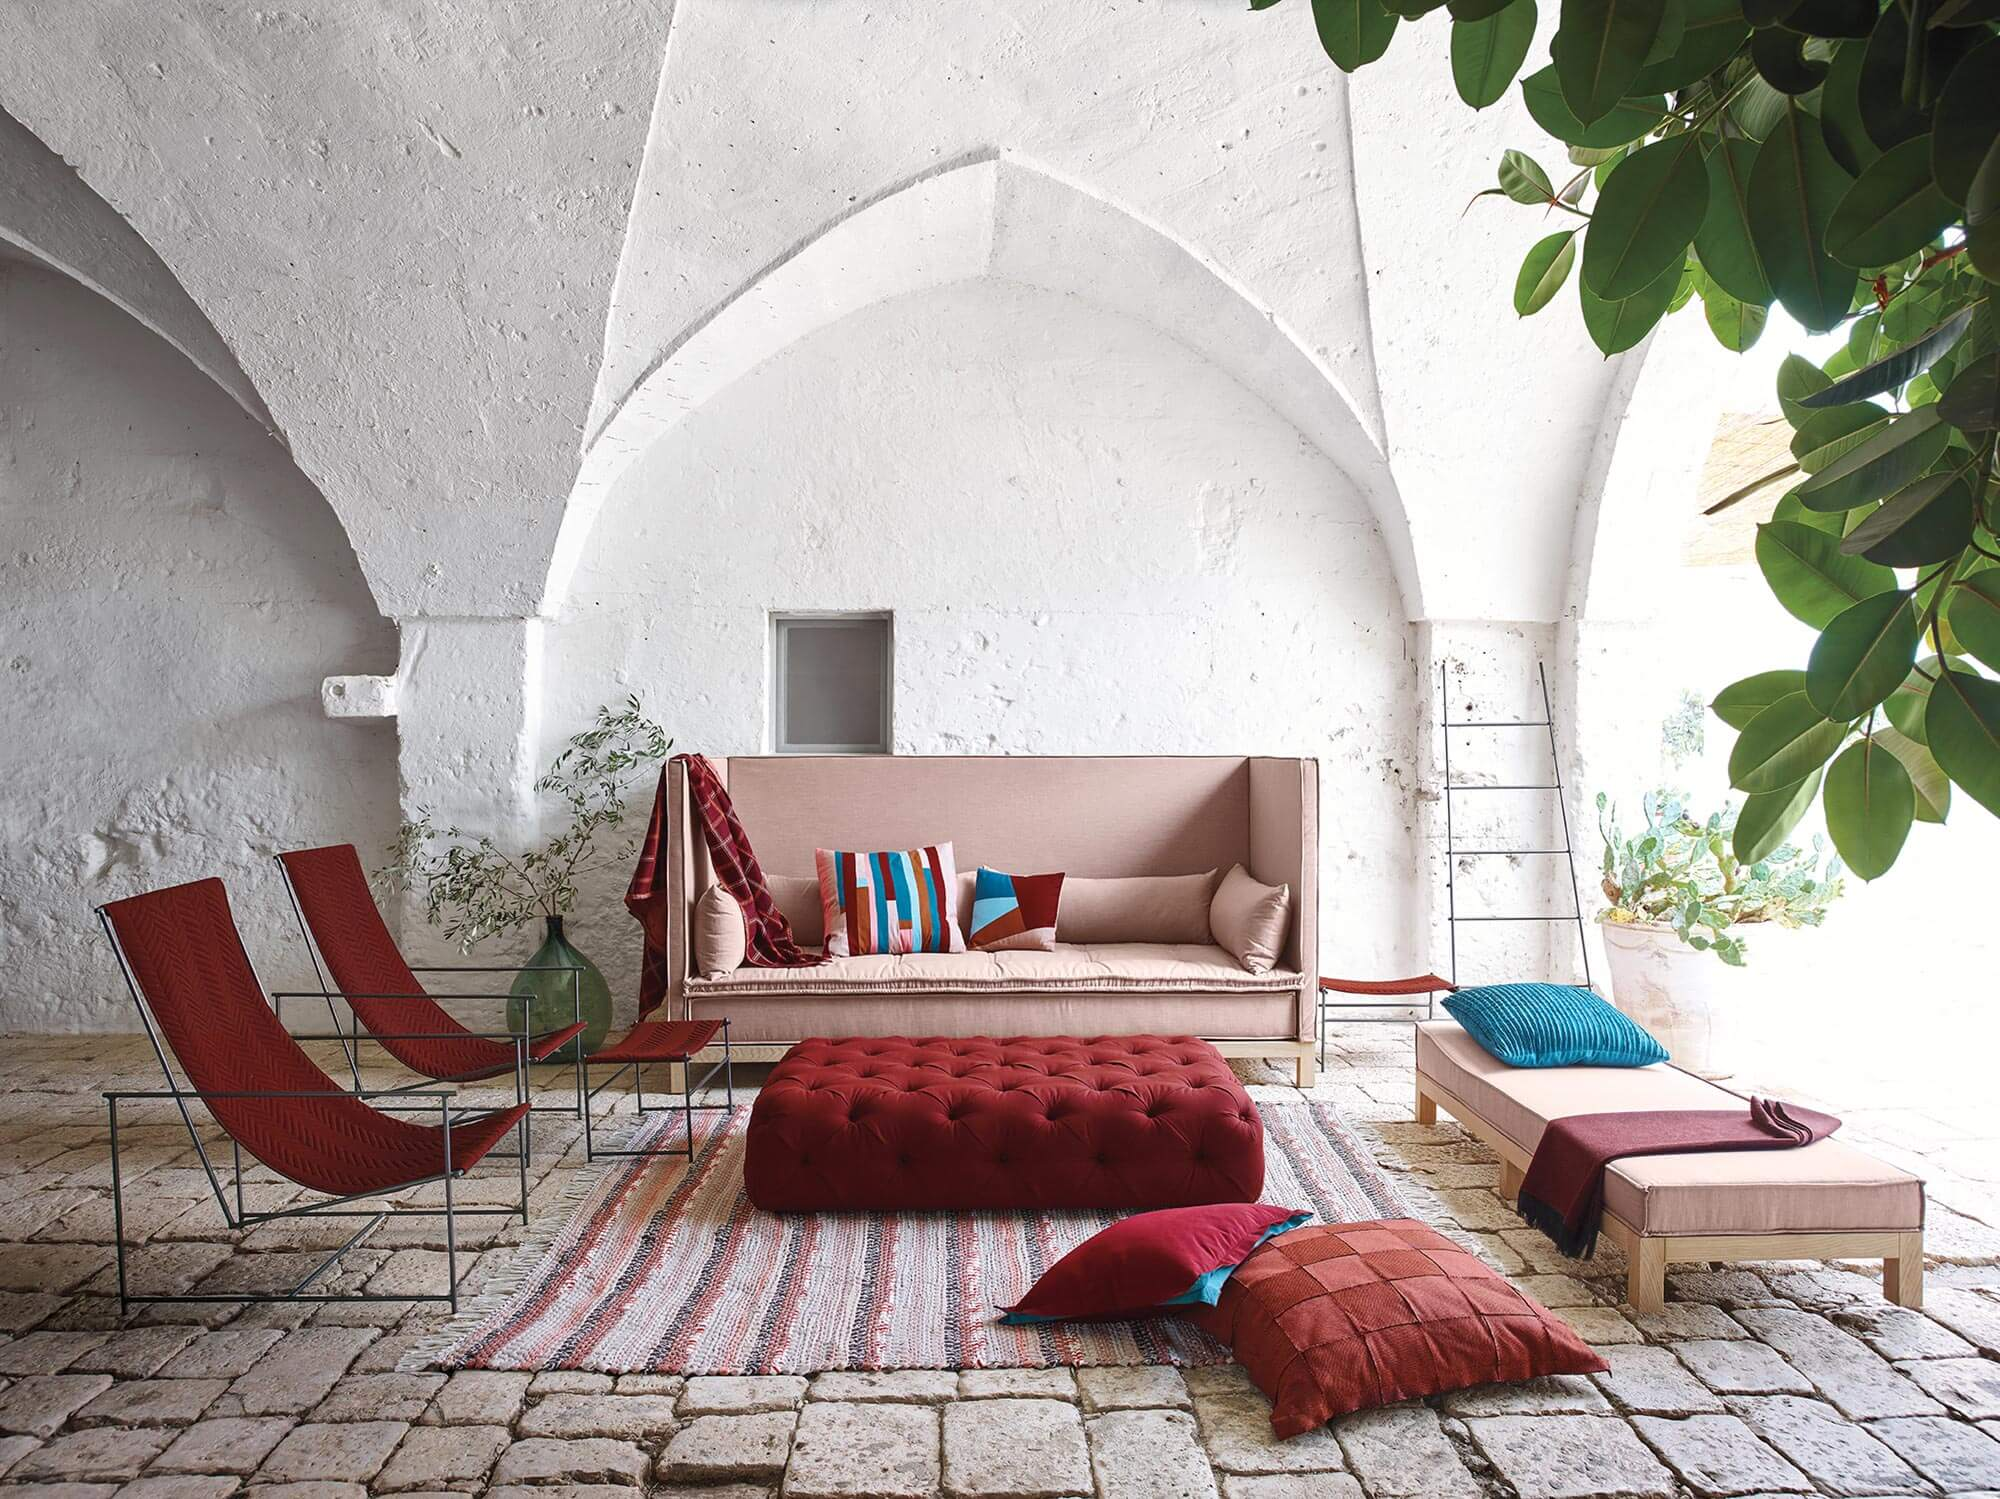 A living room with a large sofa, chairs, and a tufted ottoman in hues of red and pink are made using Sunbrella upholstery fabric.